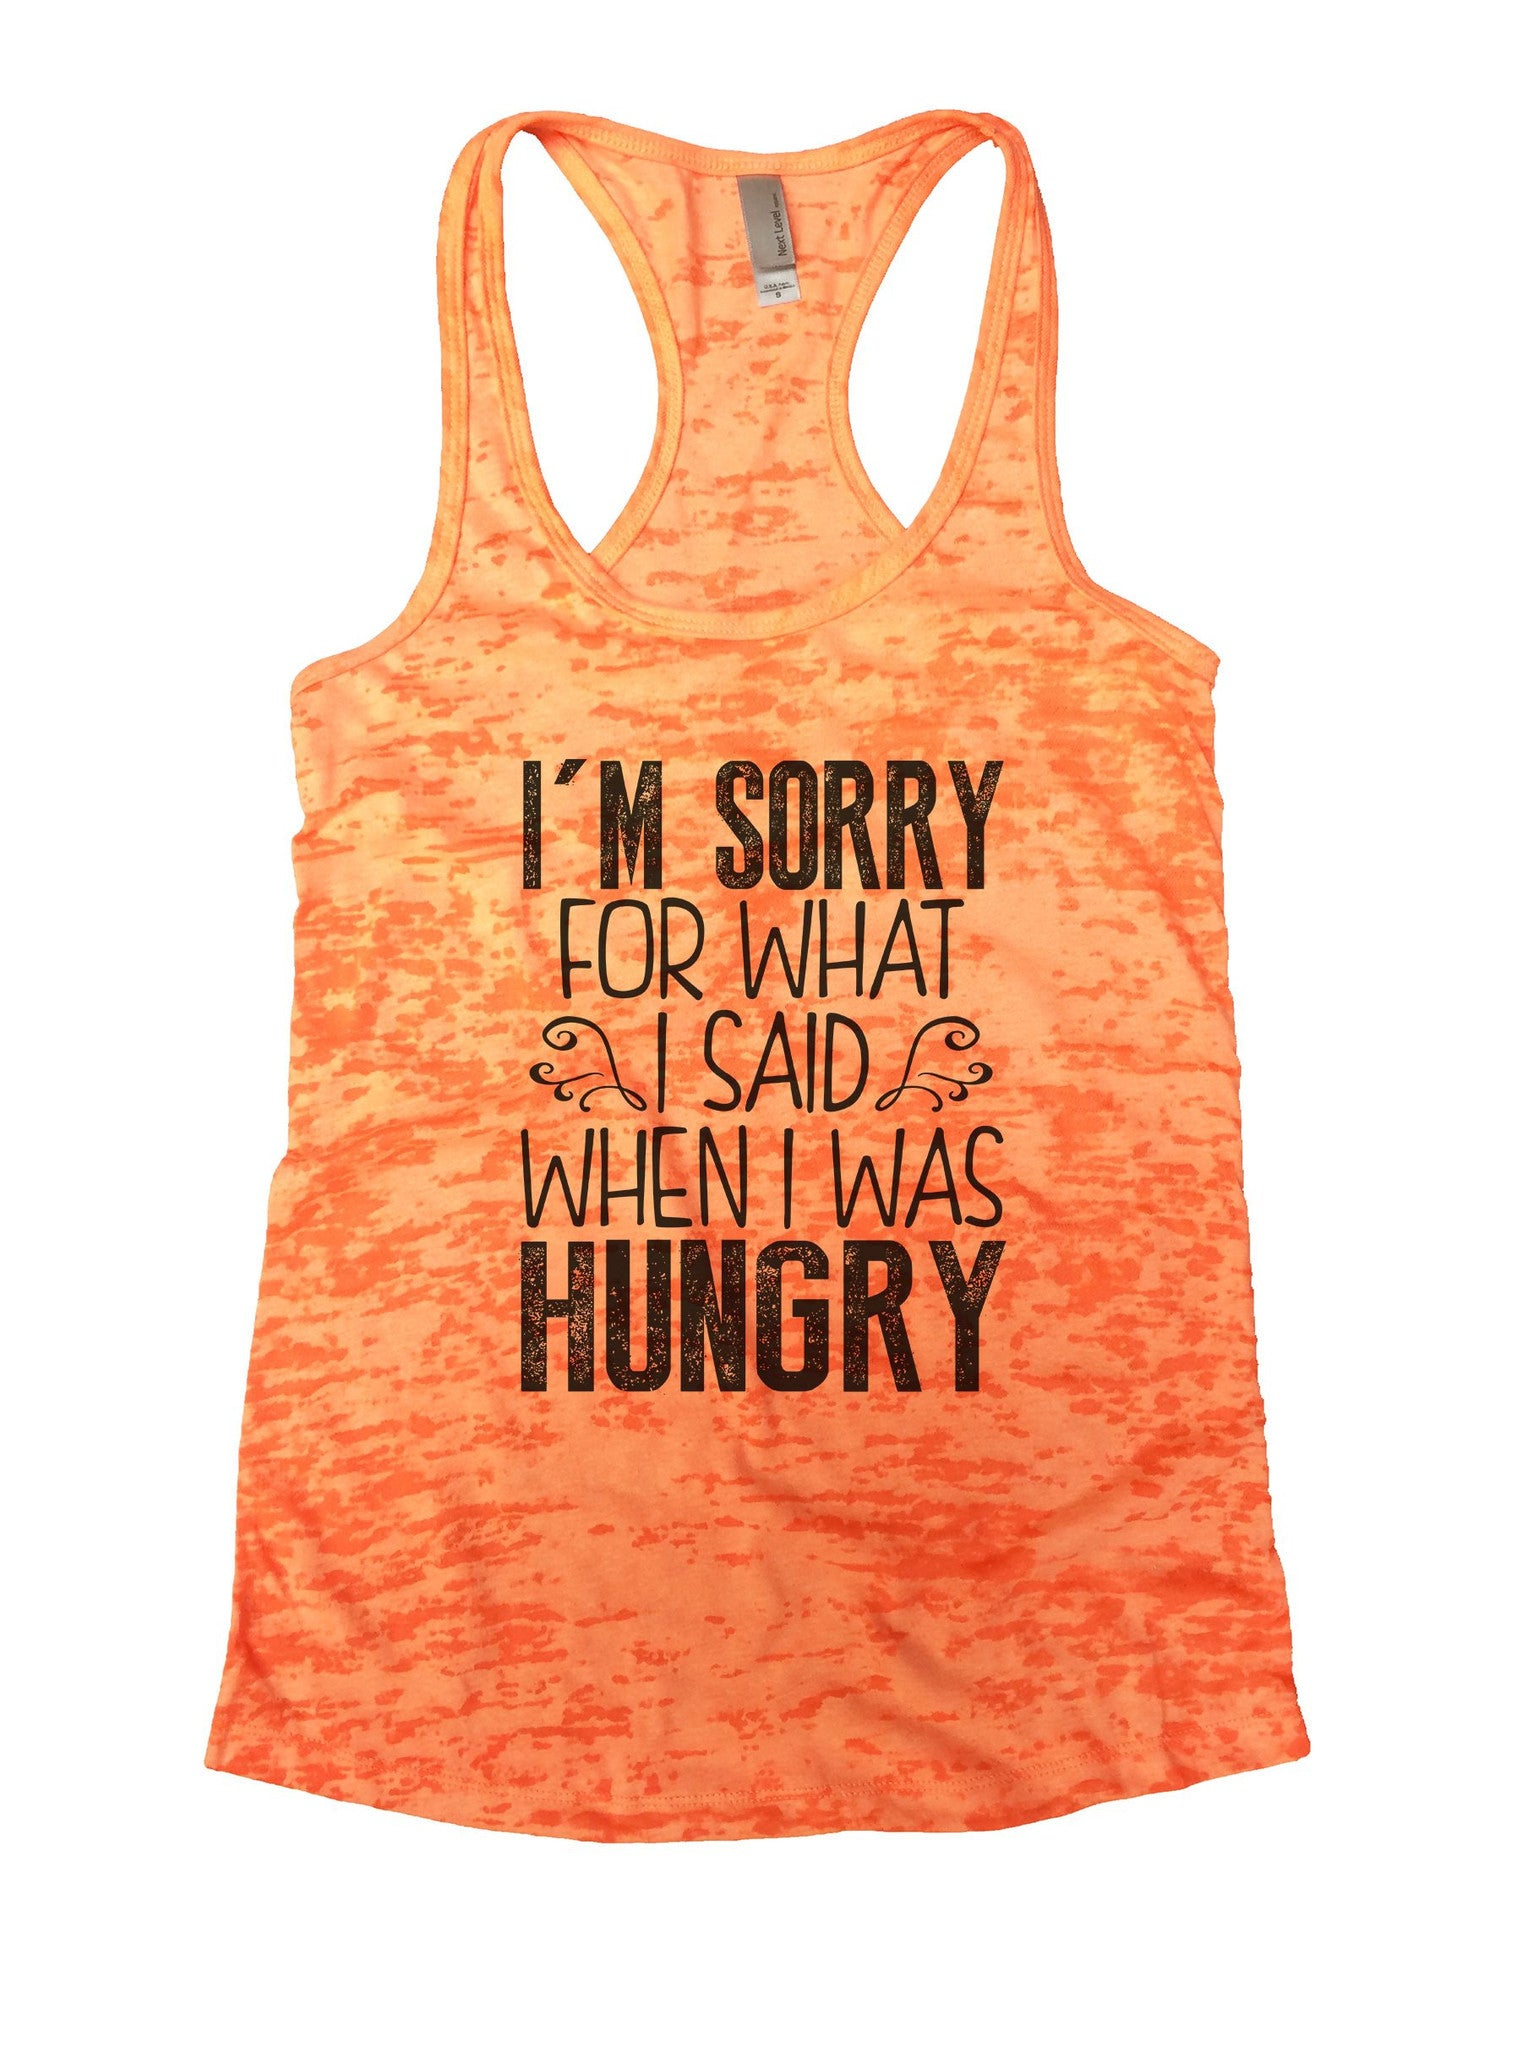 I'm Sorry For What I Said When I Was Hungry Burnout Tank Top By BurnoutTankTops.com - 952 - Funny Shirts Tank Tops Burnouts and Triblends  - 3